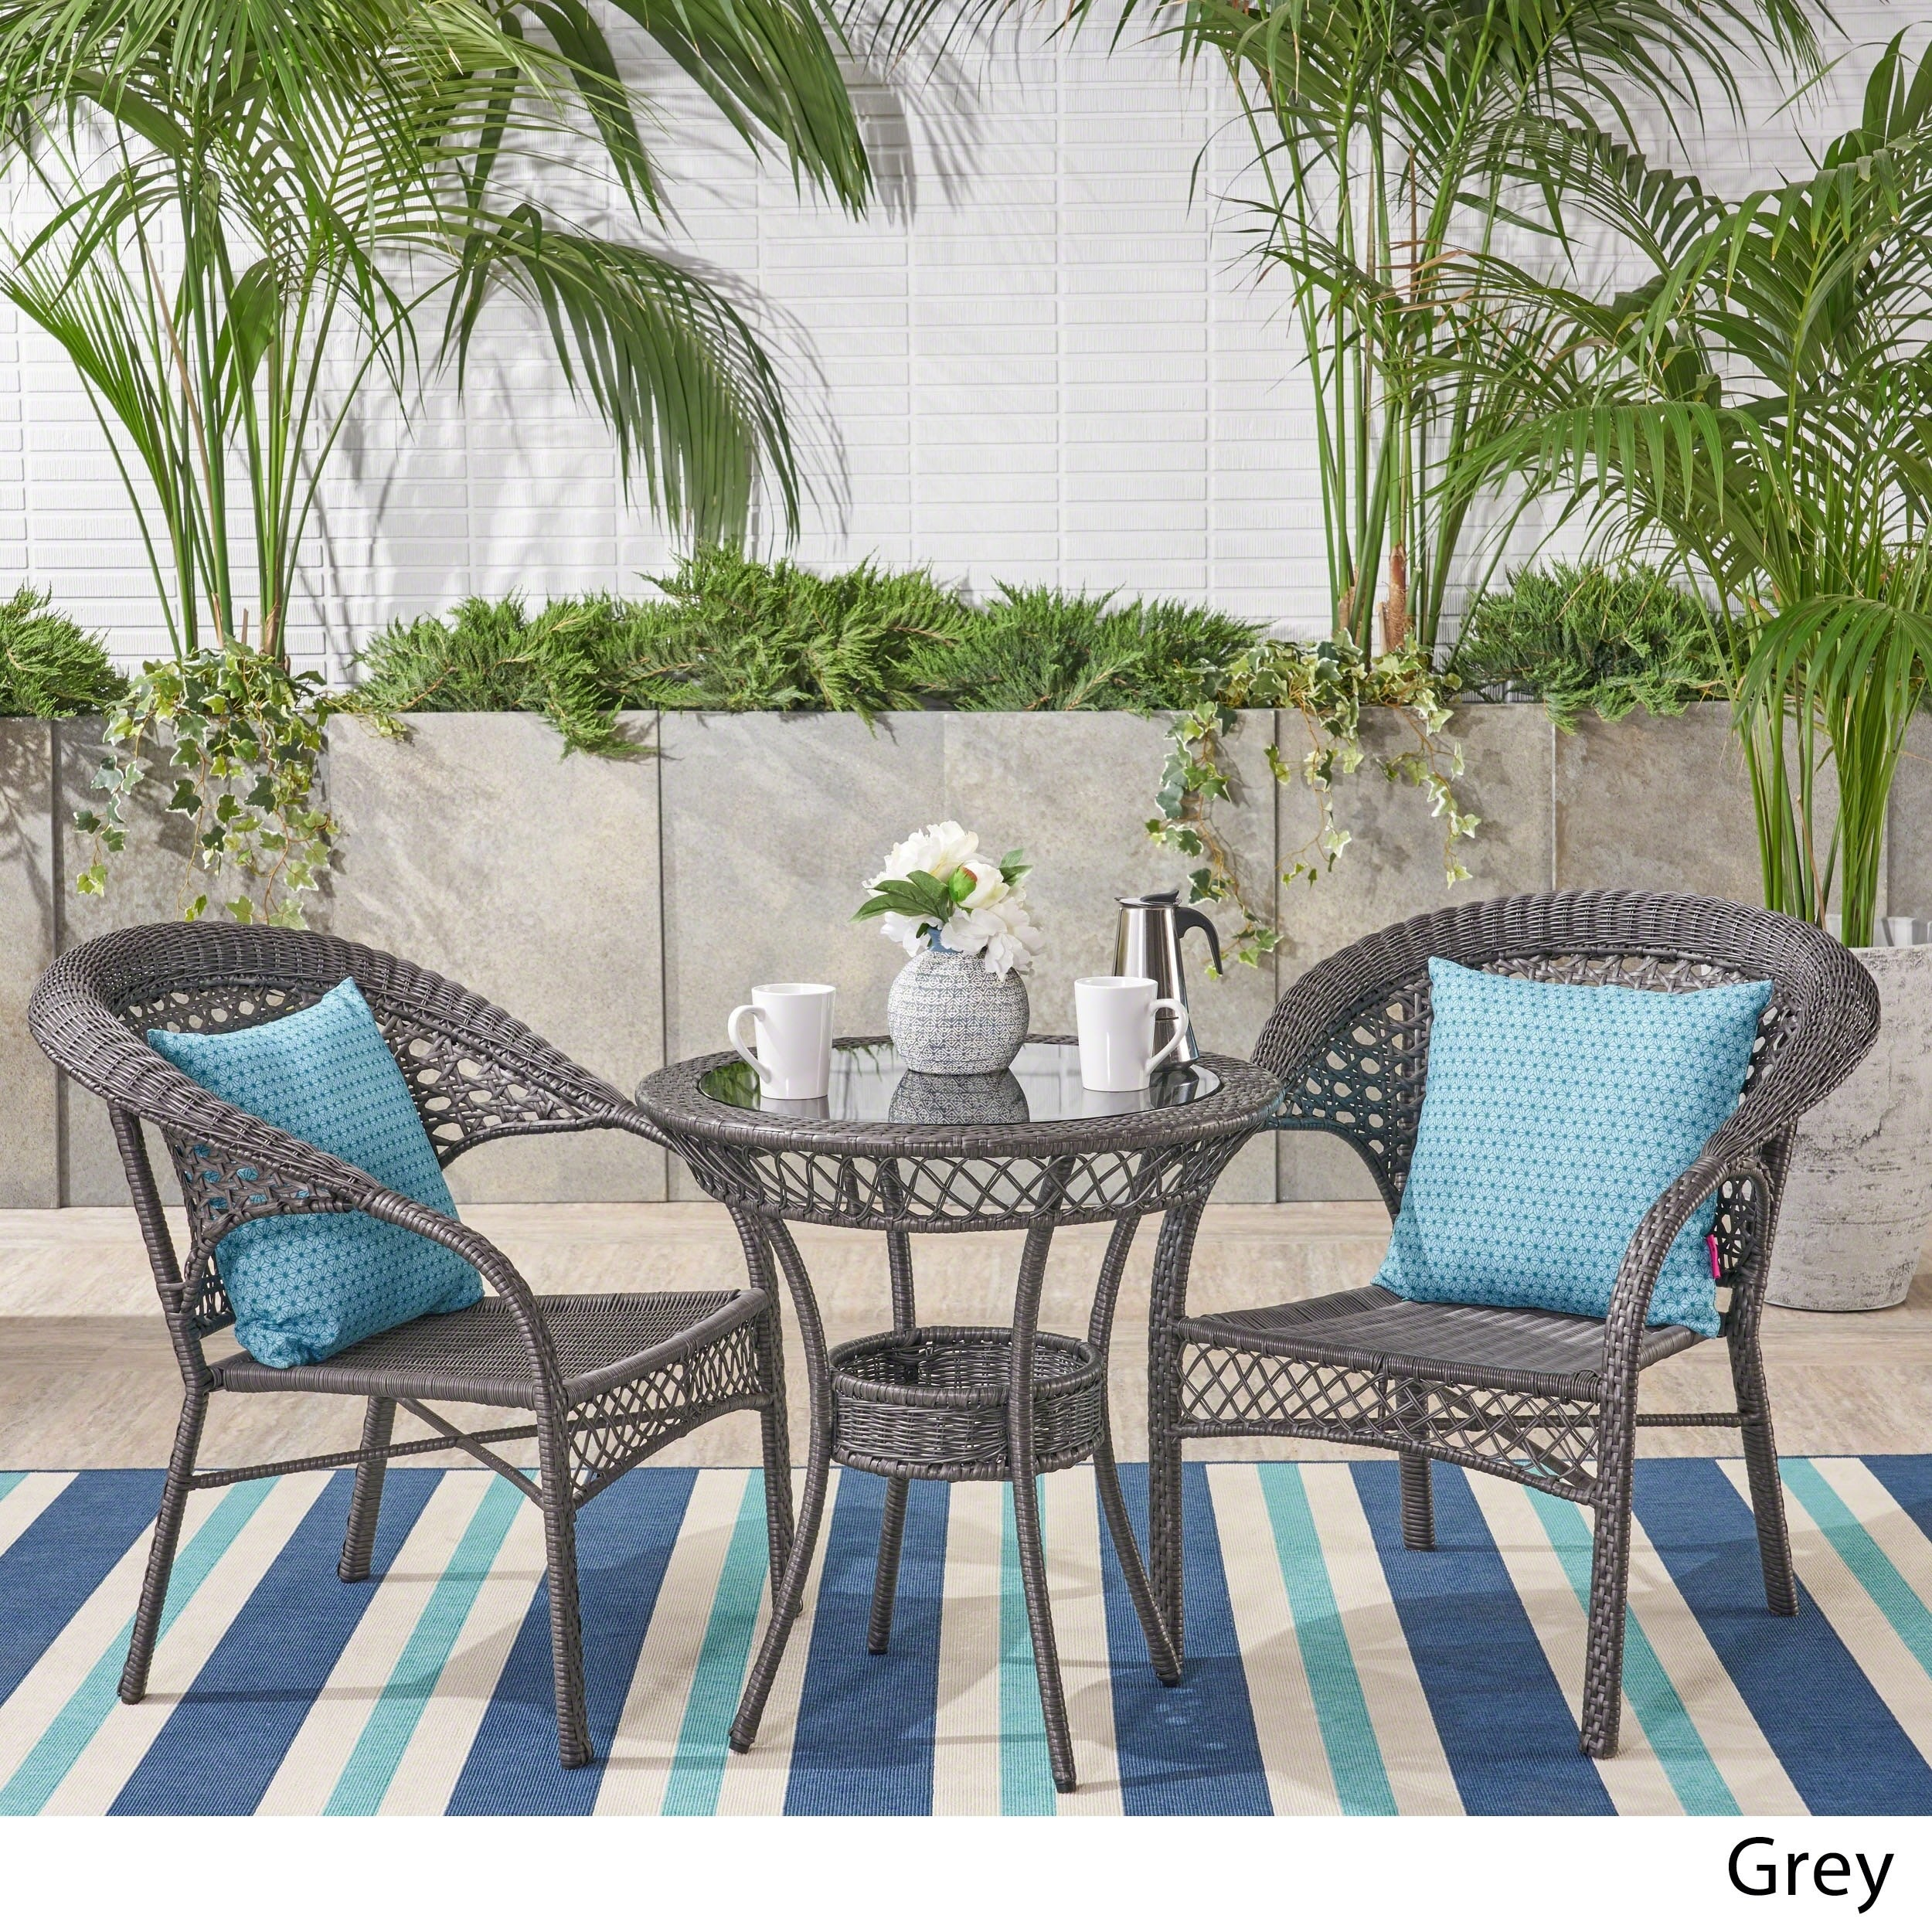 Christopher Knight Home Outdoor Wicker 3-piece Bistro Set by